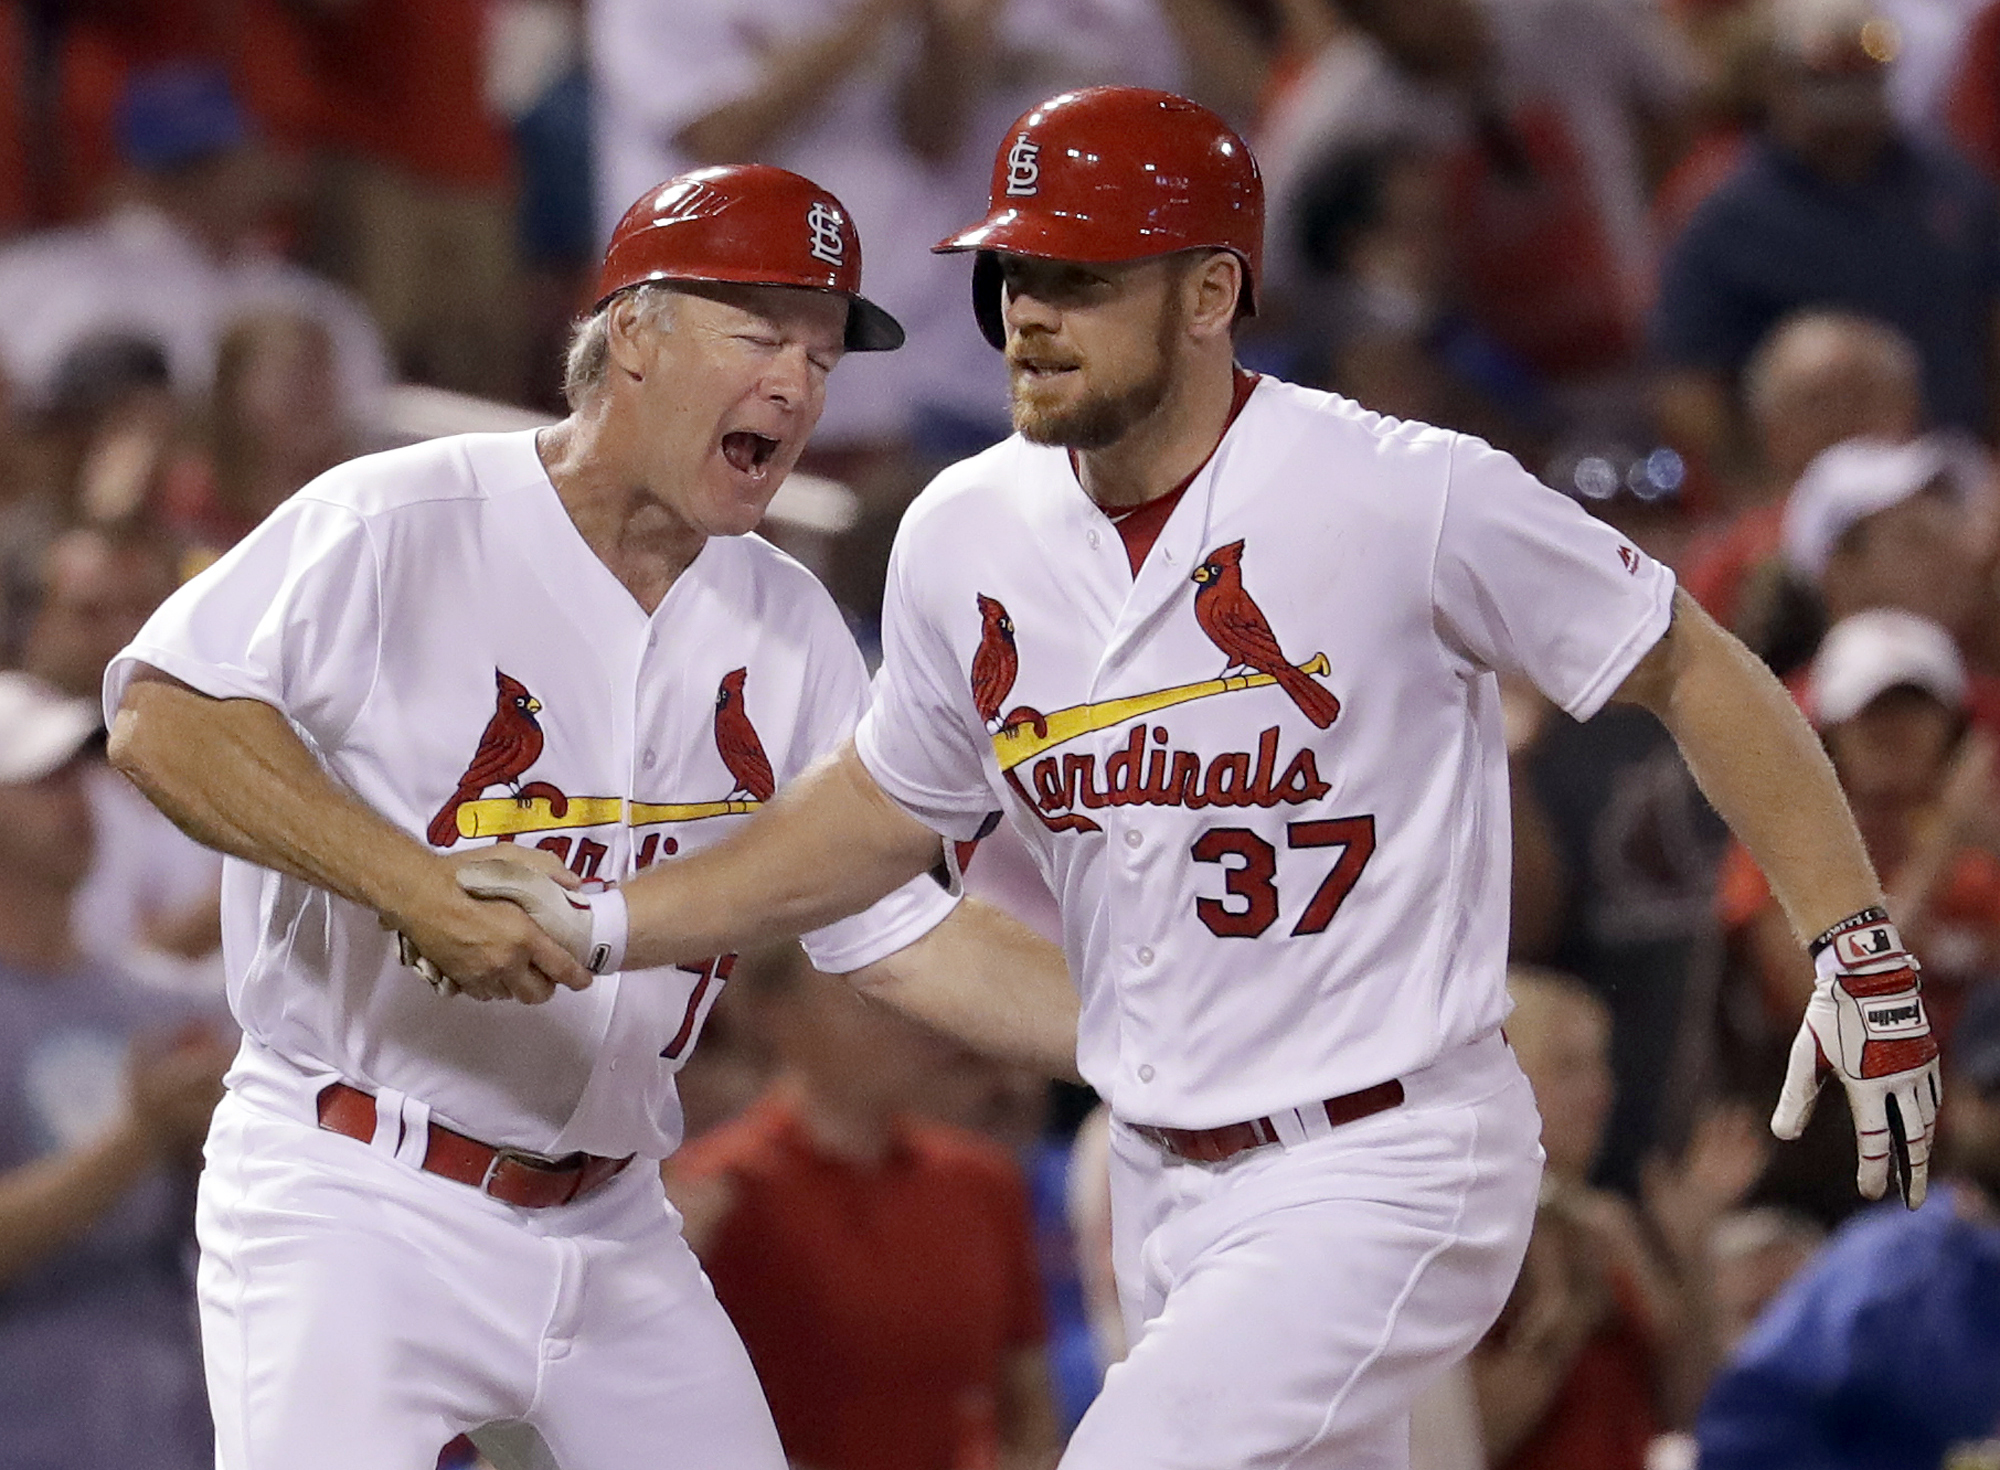 St. Louis Cardinals' Brandon Moss, right, is congratulated by third base coach Chris Maloney while rounding the bases after hitting a two-run home run during the sixth inning of a baseball game against the Chicago Cubs, Tuesday, Sept. 13, 2016, in St. Lou